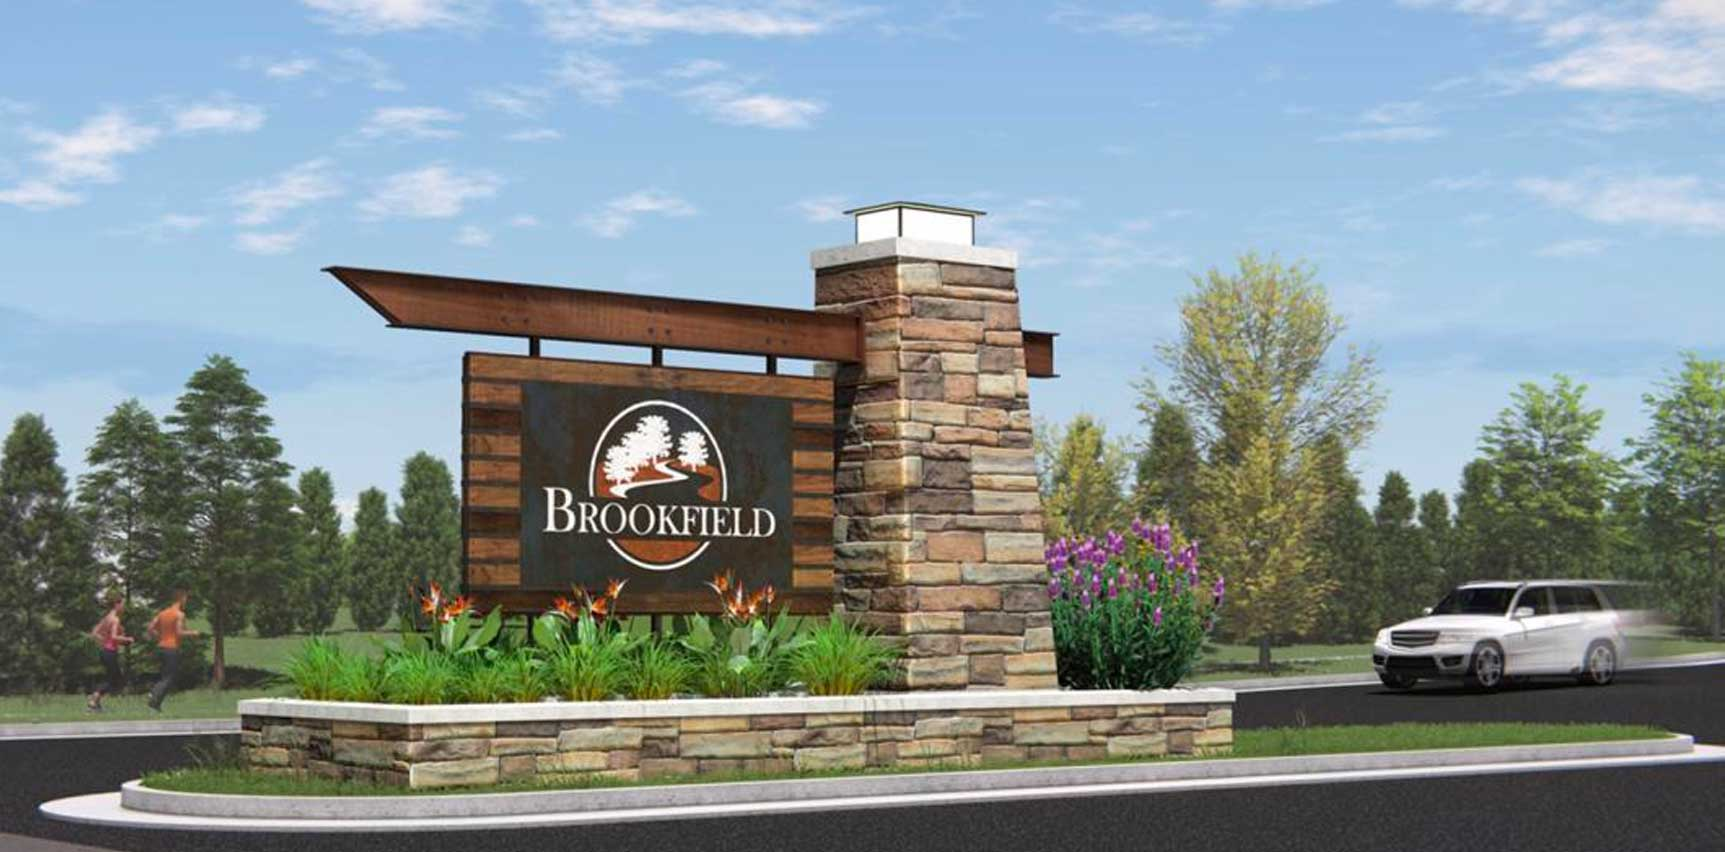 House for sale: Brookfield